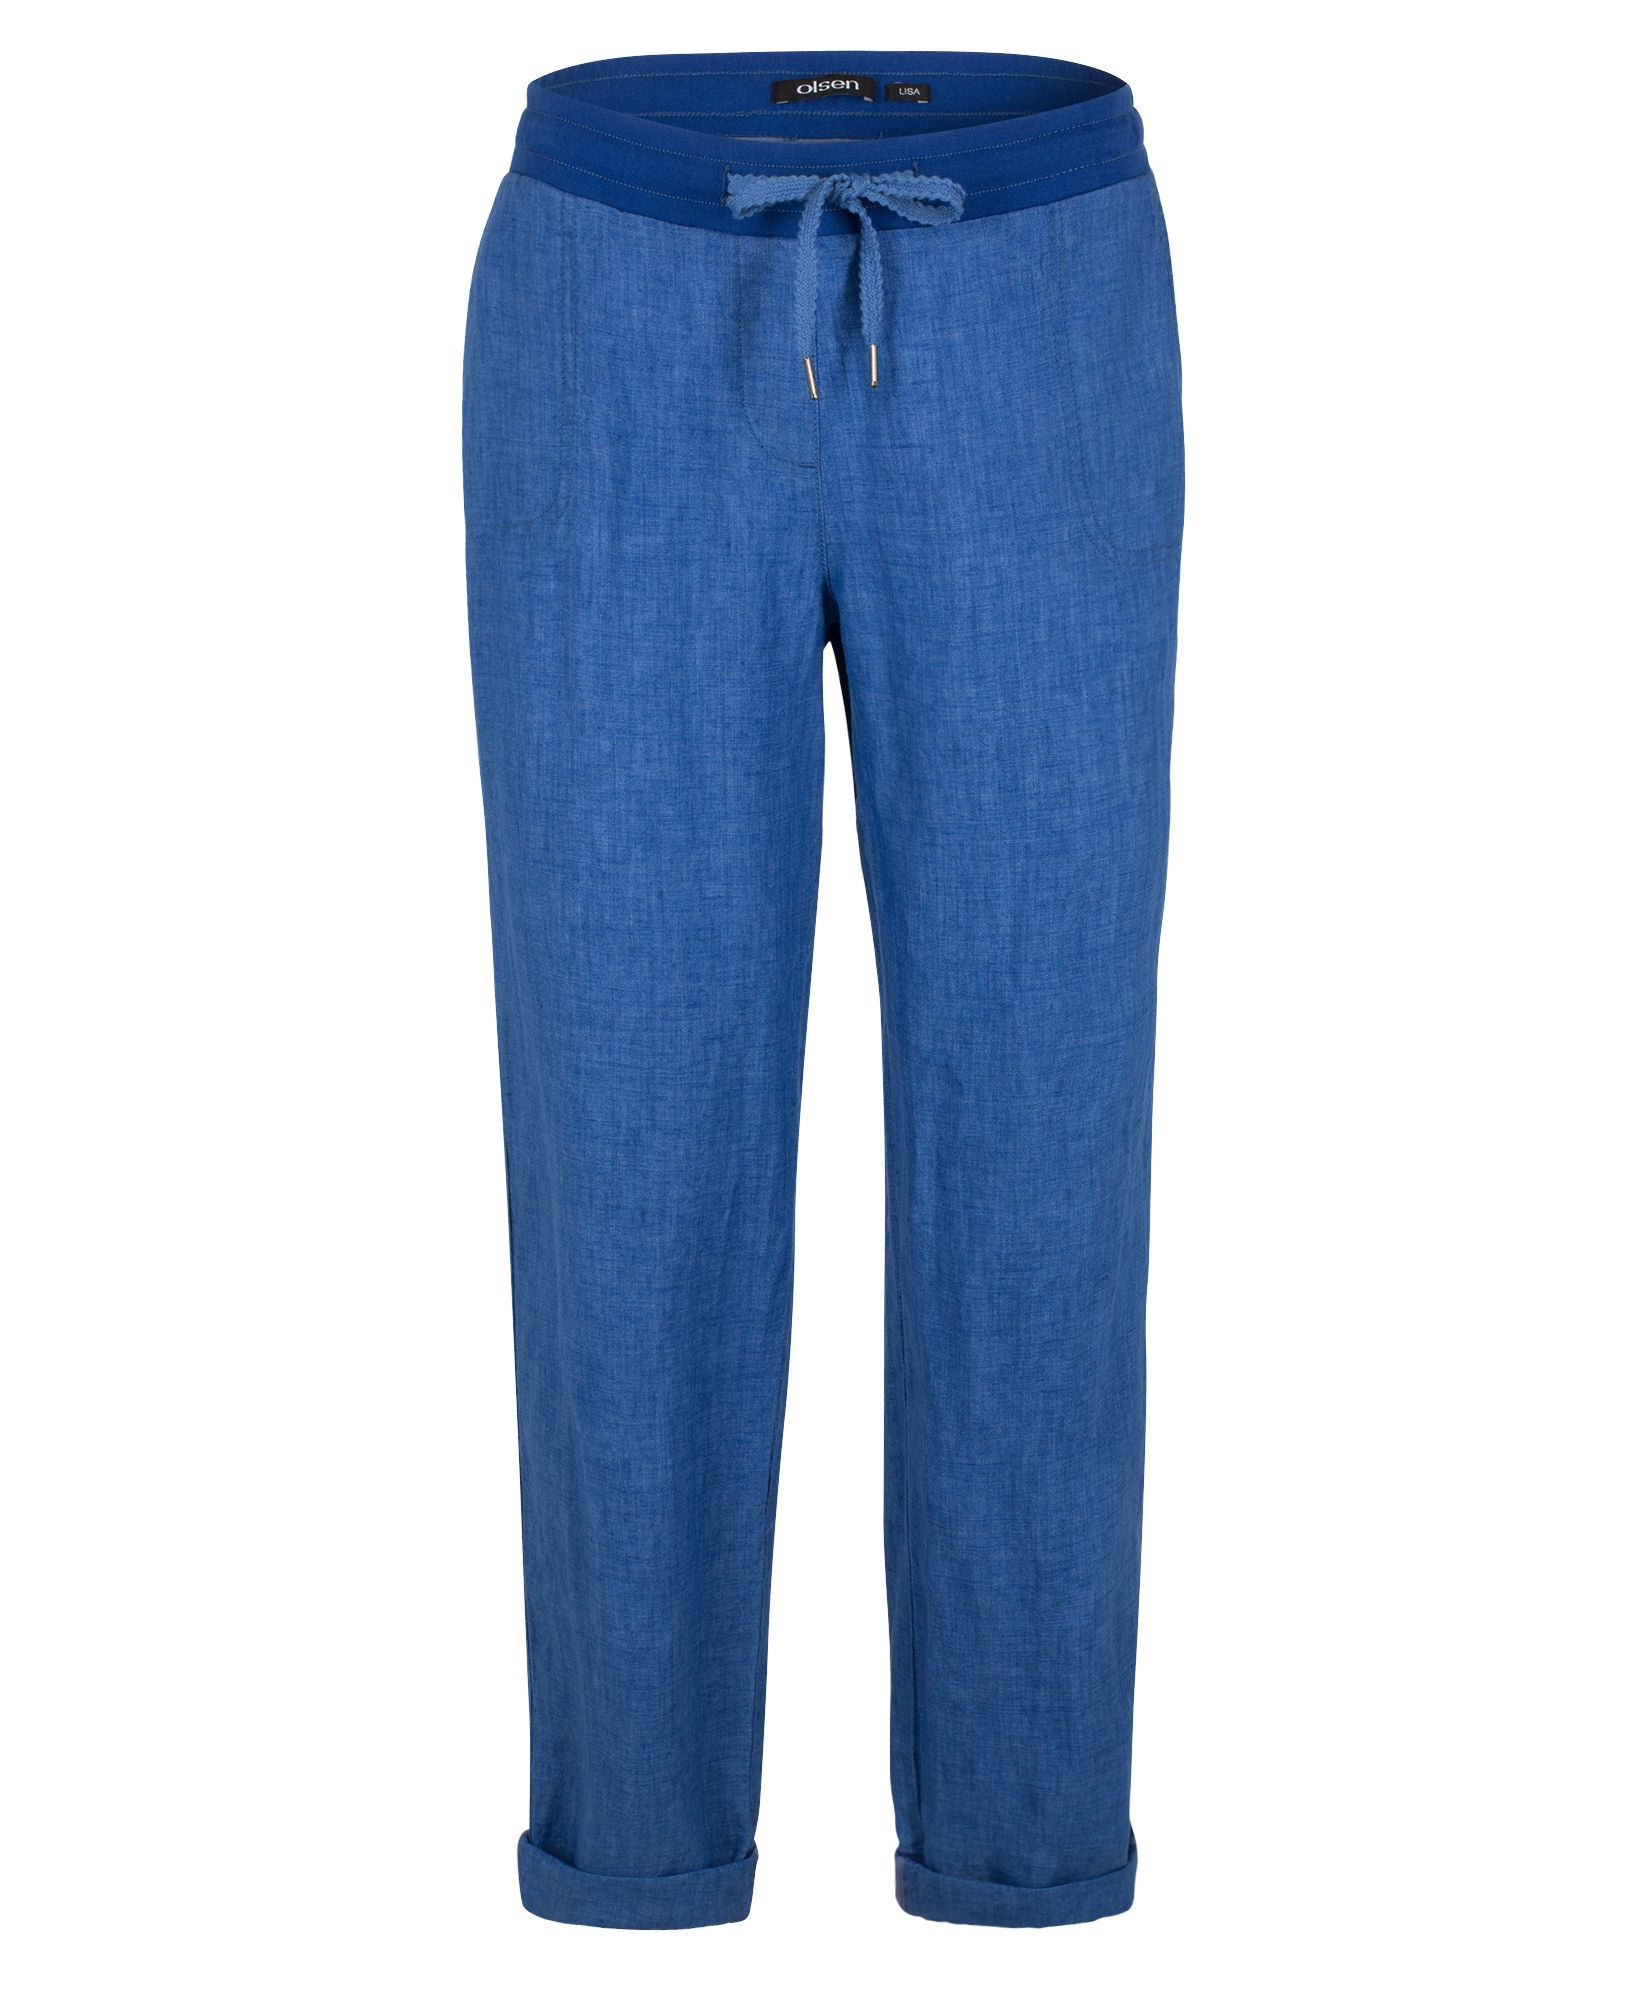 Olsen Trousers Casual Cropped, Cobalt